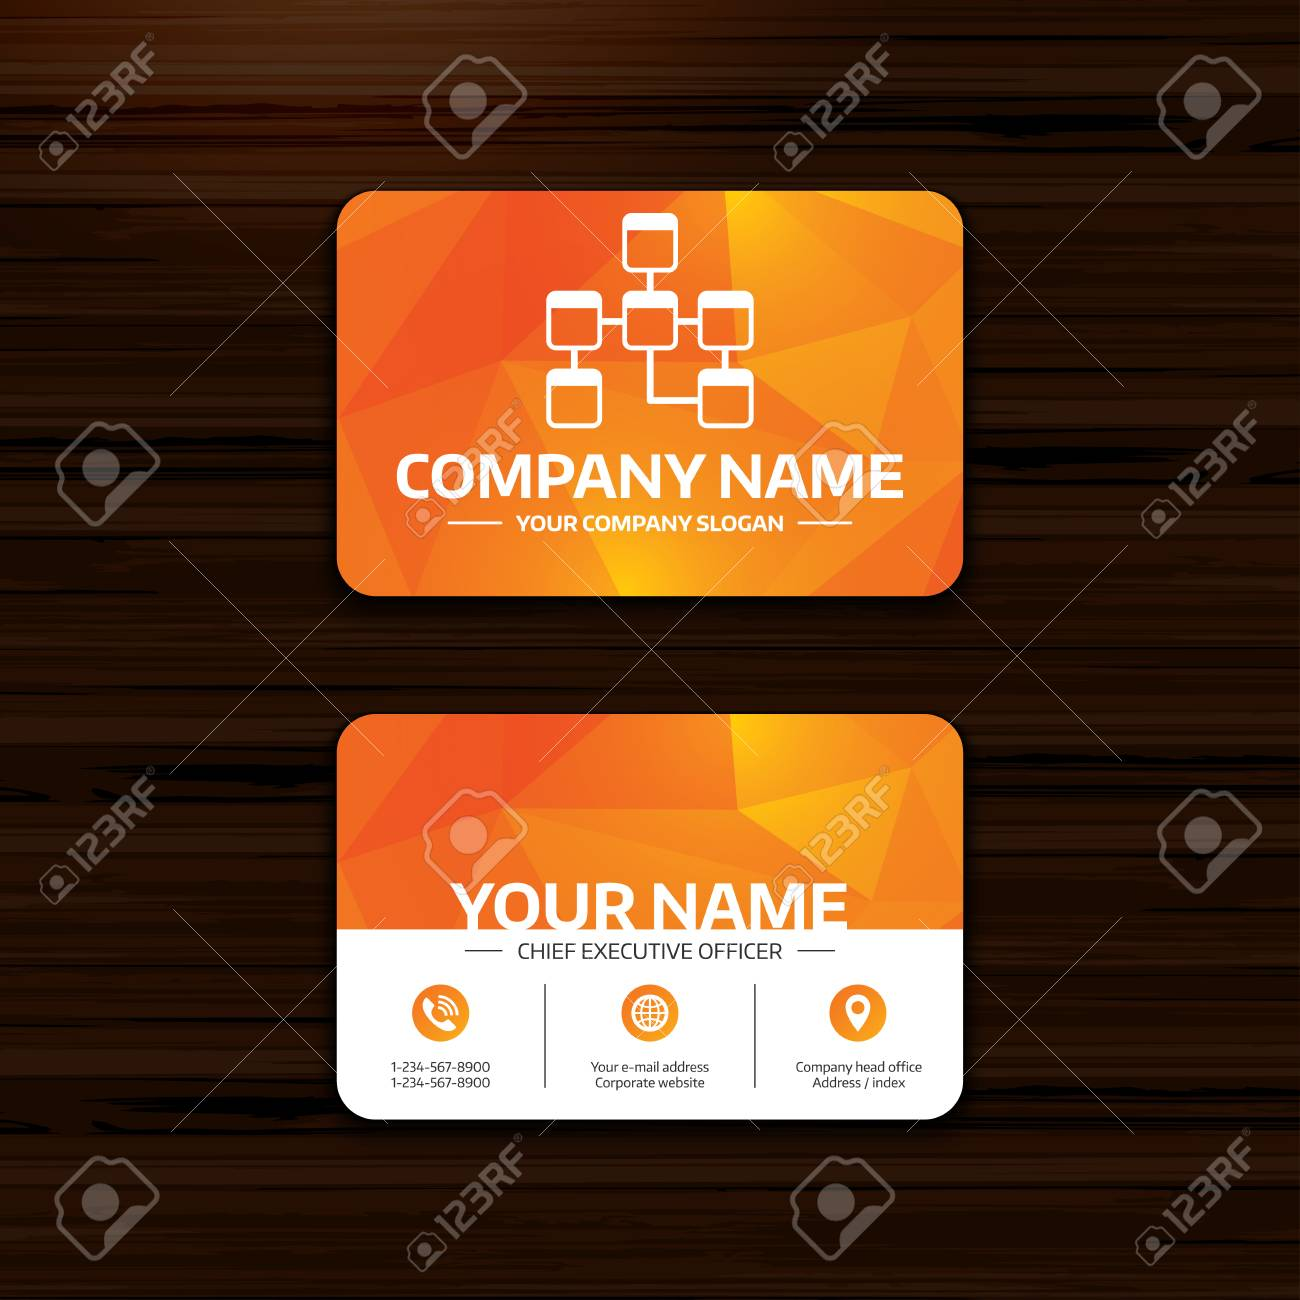 Business or visiting card template database sign icon relational business or visiting card template database sign icon relational database schema symbol phone reheart Images